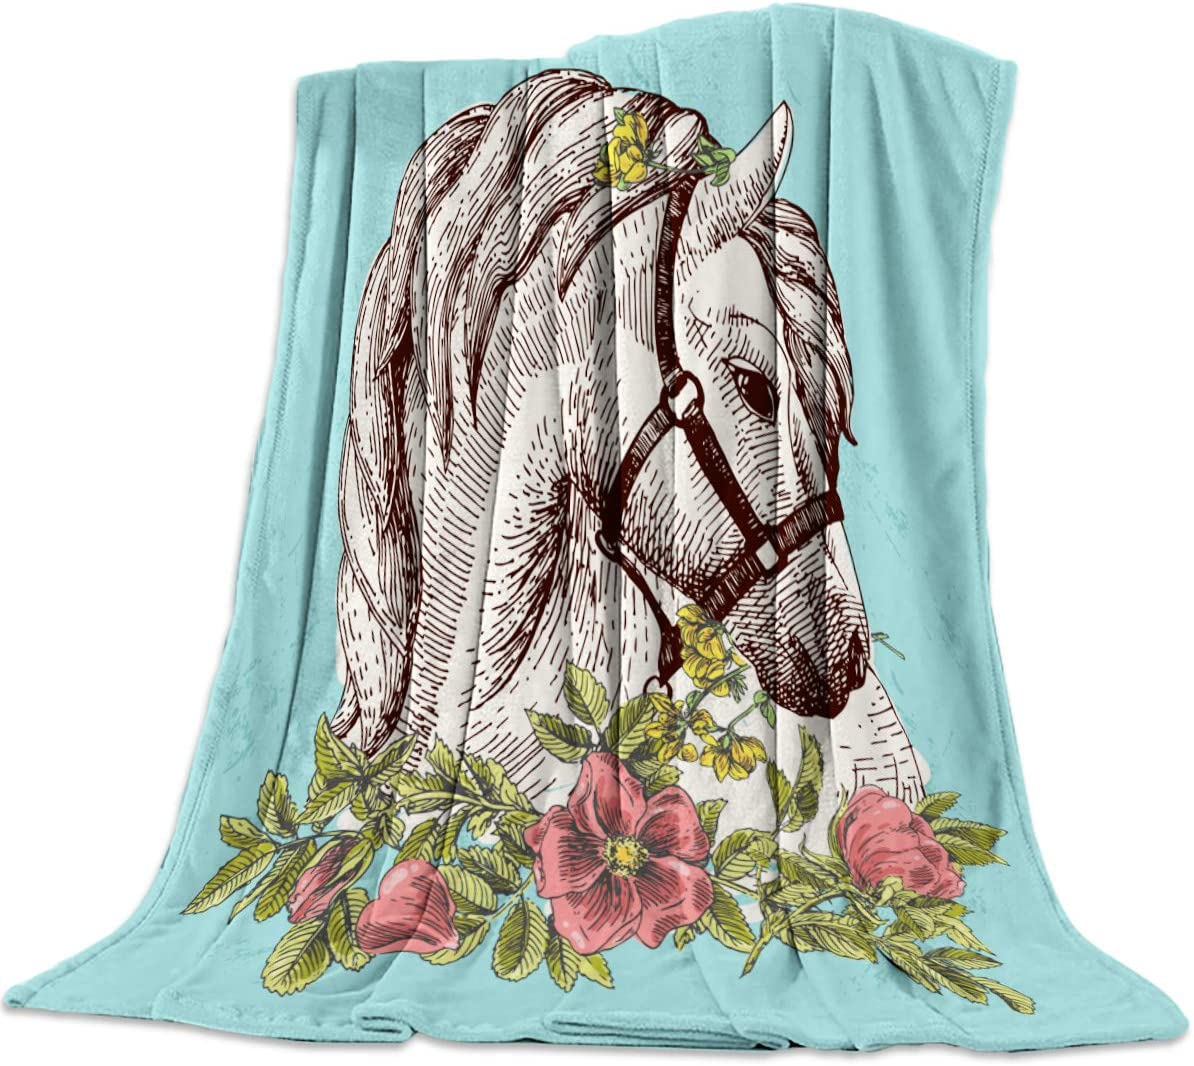 "Aomike Flannel Fleece Throw Blanket for Couch- 39"" x 49"", Turquoise Background Bohemia White Horse with Flower Blanket Super Soft Cozy Plush Microfiber Fluffy Blanket Lightweight Warm Bed Blanket"